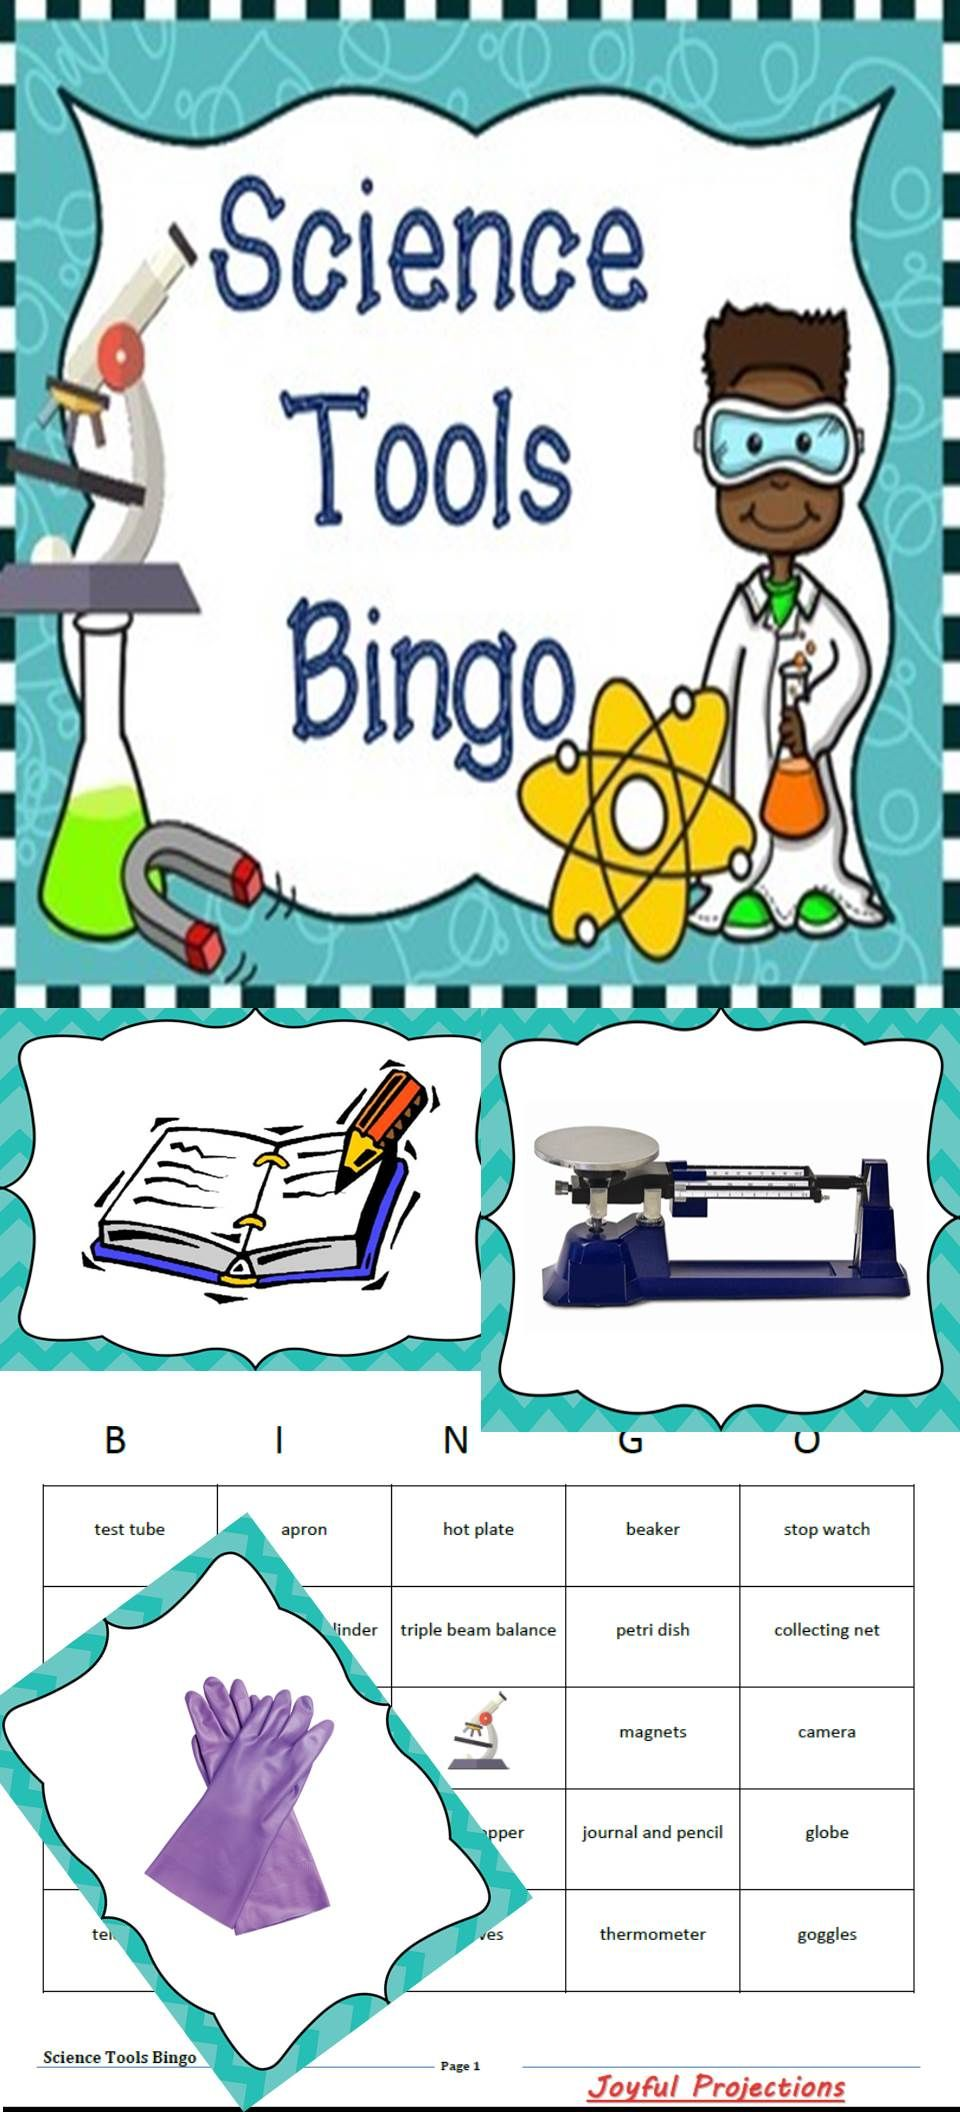 Science Tools Bingo Whole Group Review Activity W Bingo Cards Science Tools Science Classroom Science [ 2112 x 960 Pixel ]